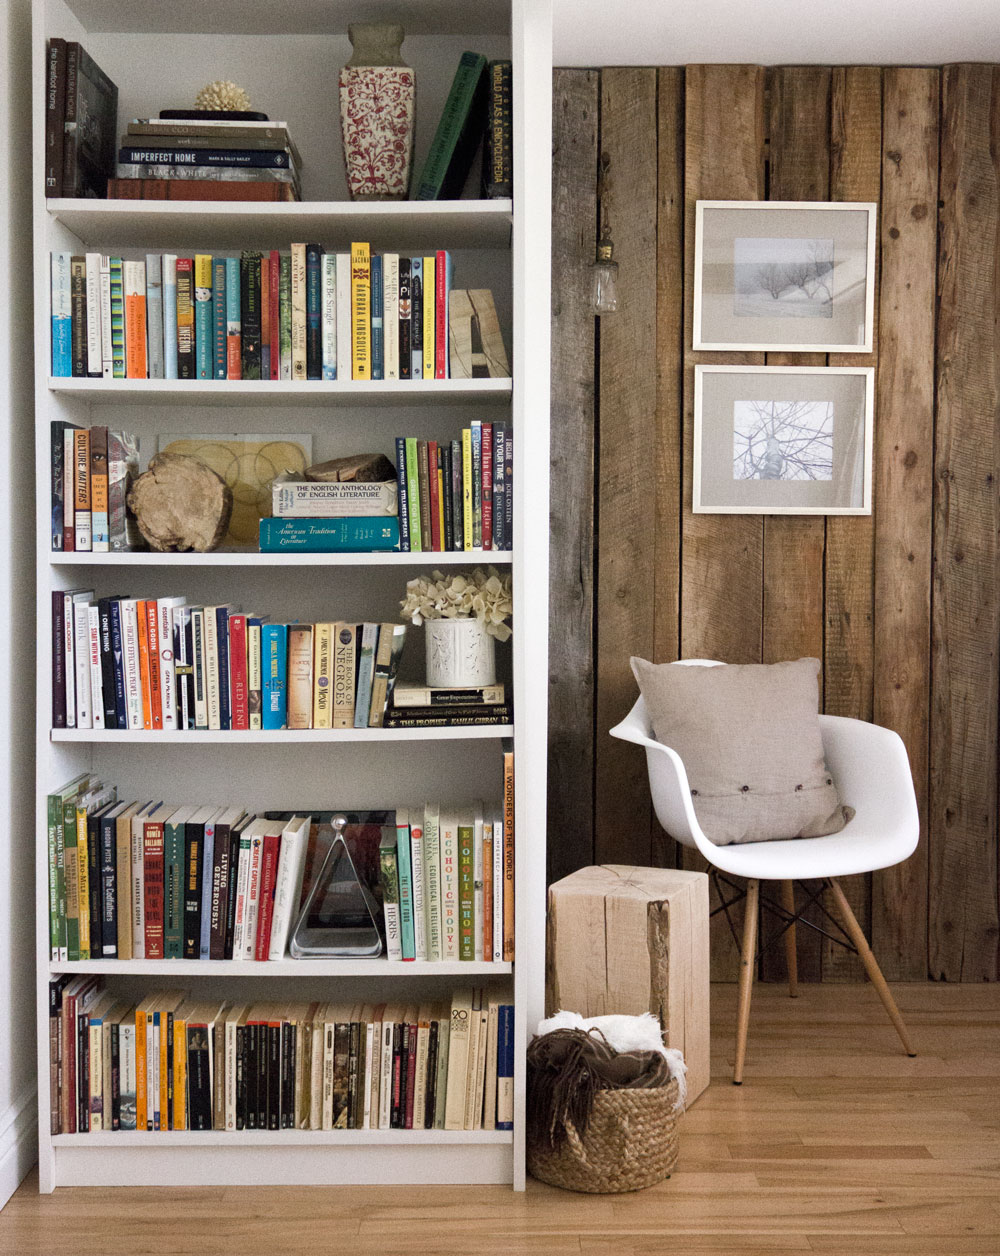 Books in my home are a key design element to add colour, warmth and meaning